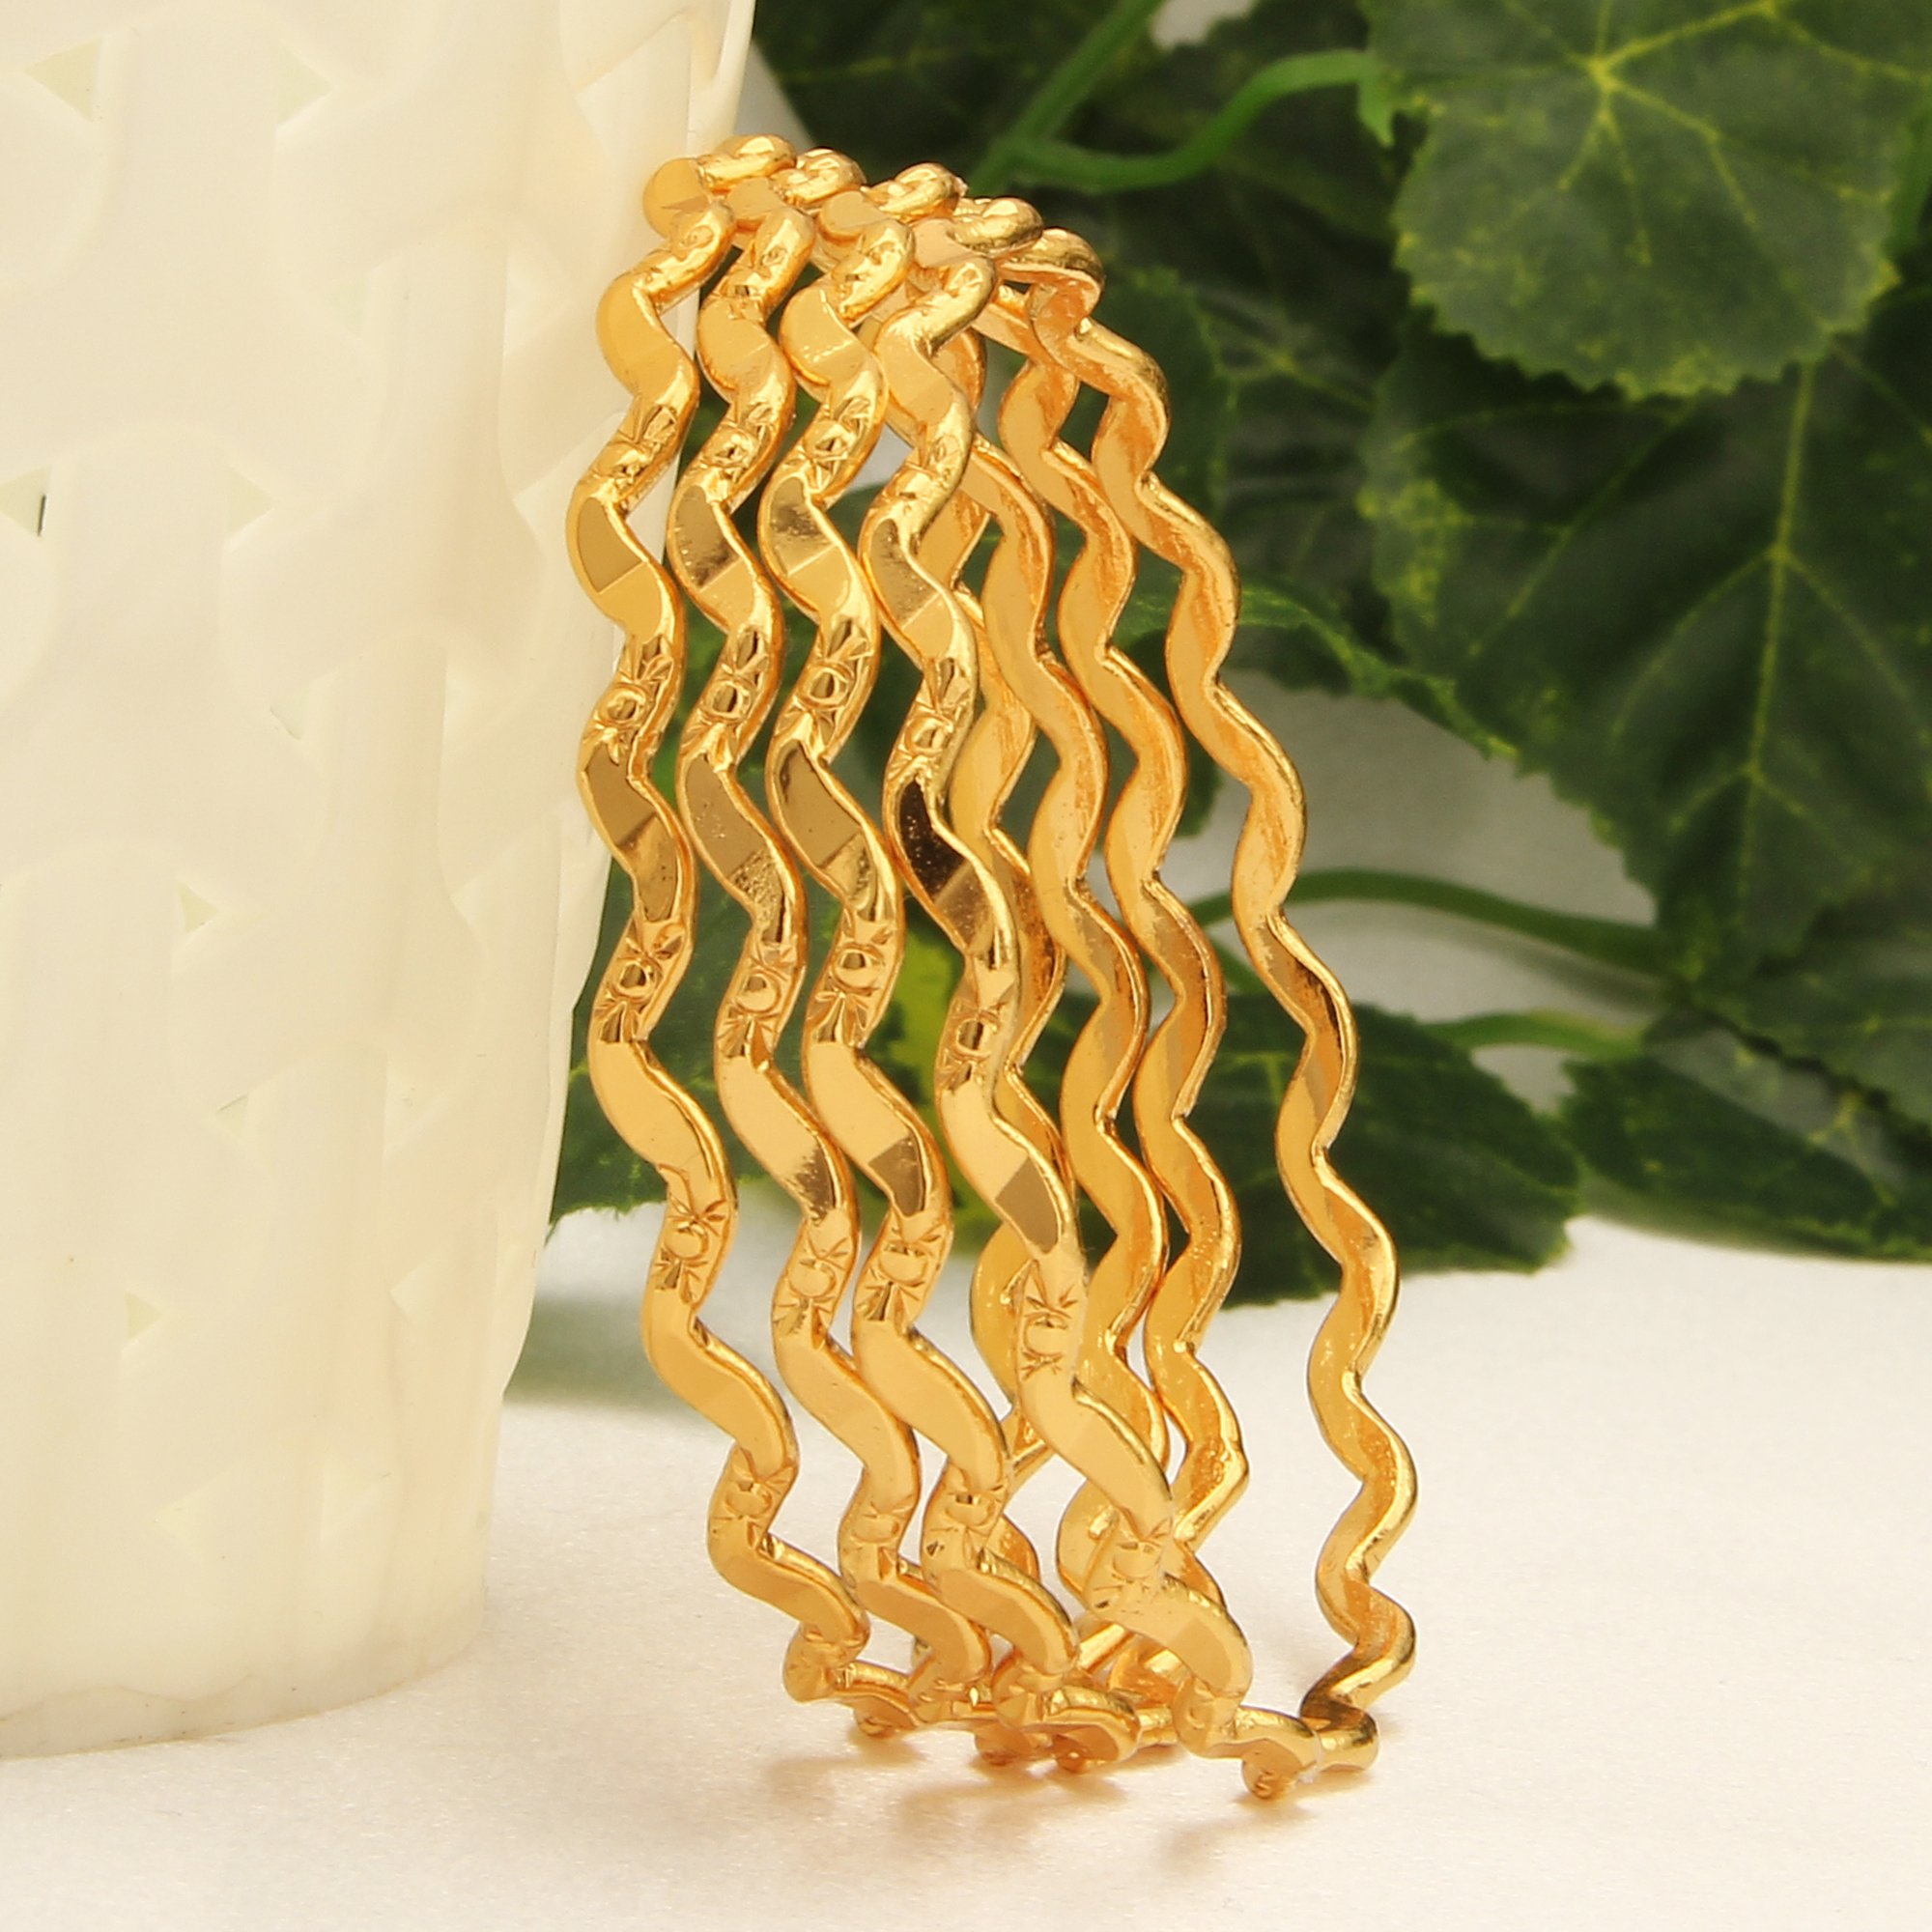 Sasitrends 1 Gram Gold Plated Thin Size Daily Wearable.